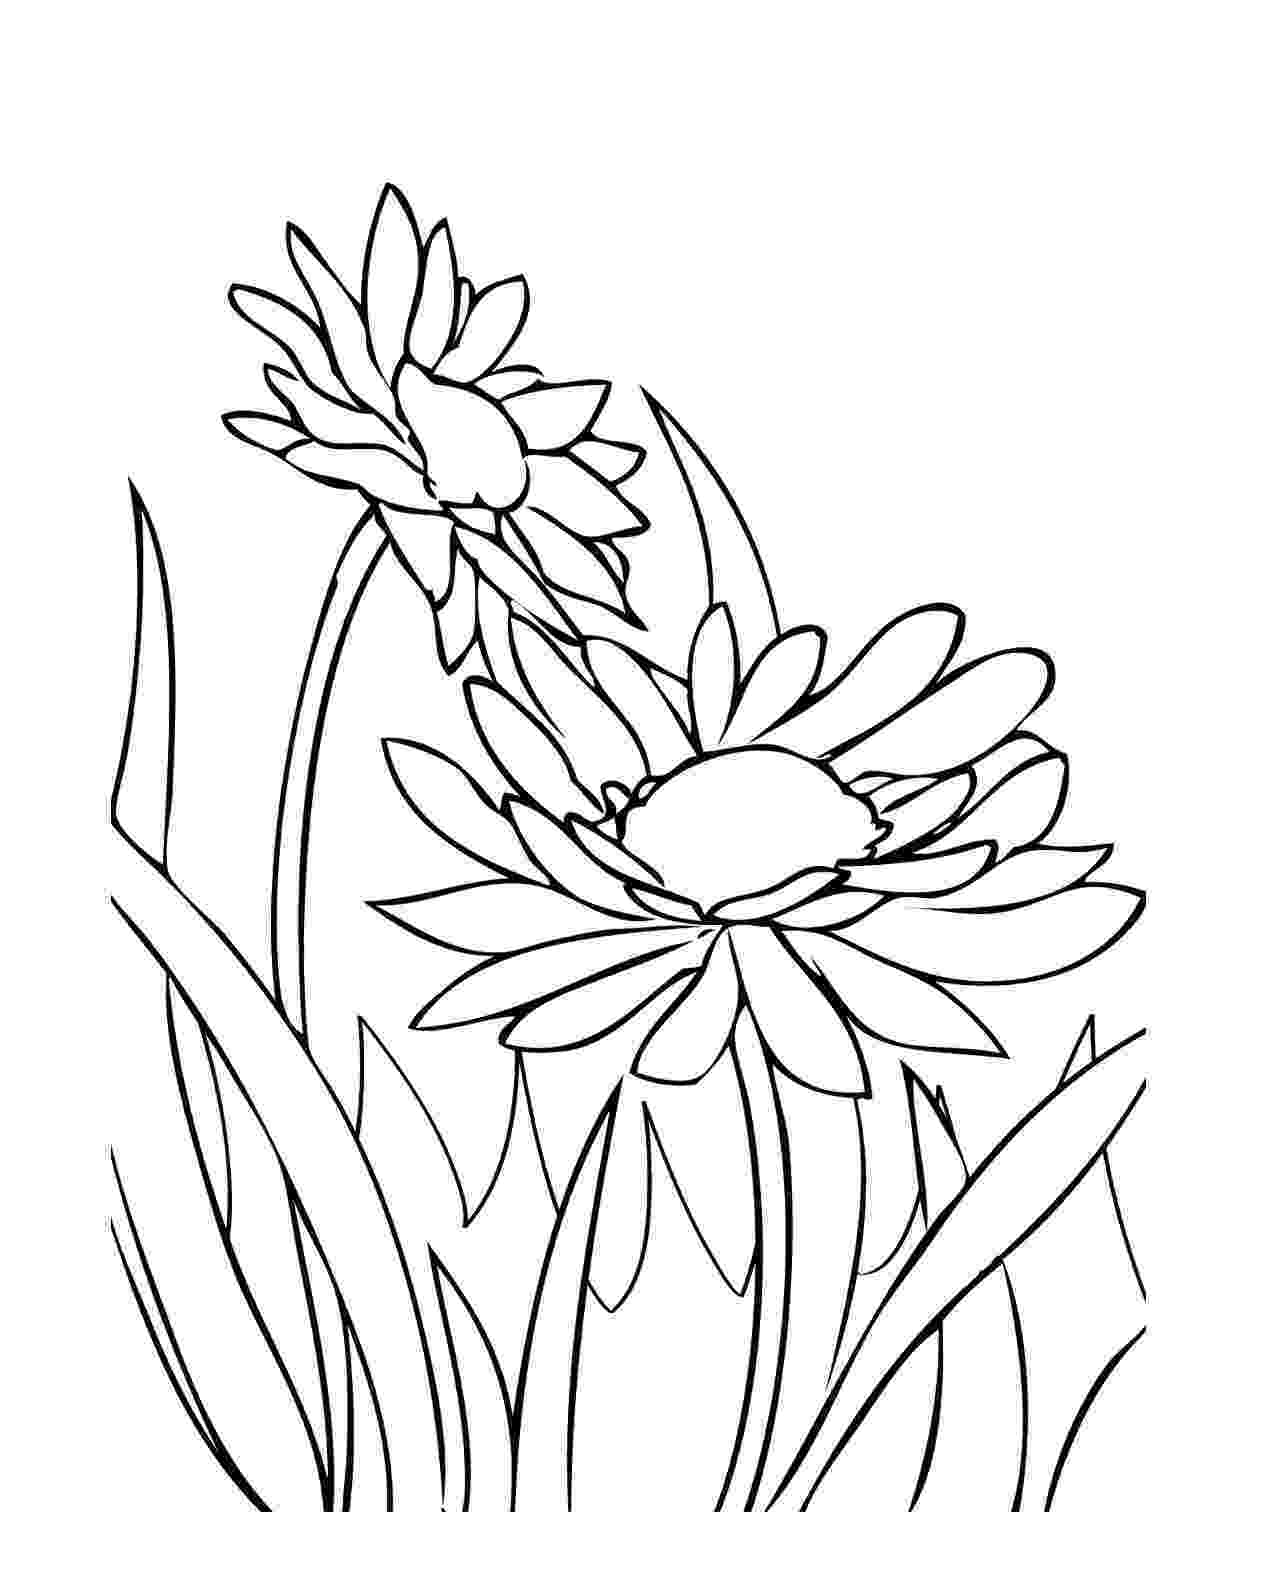 coloring pages of spring flowers spring coloring pages design magazine flowers coloring spring pages of